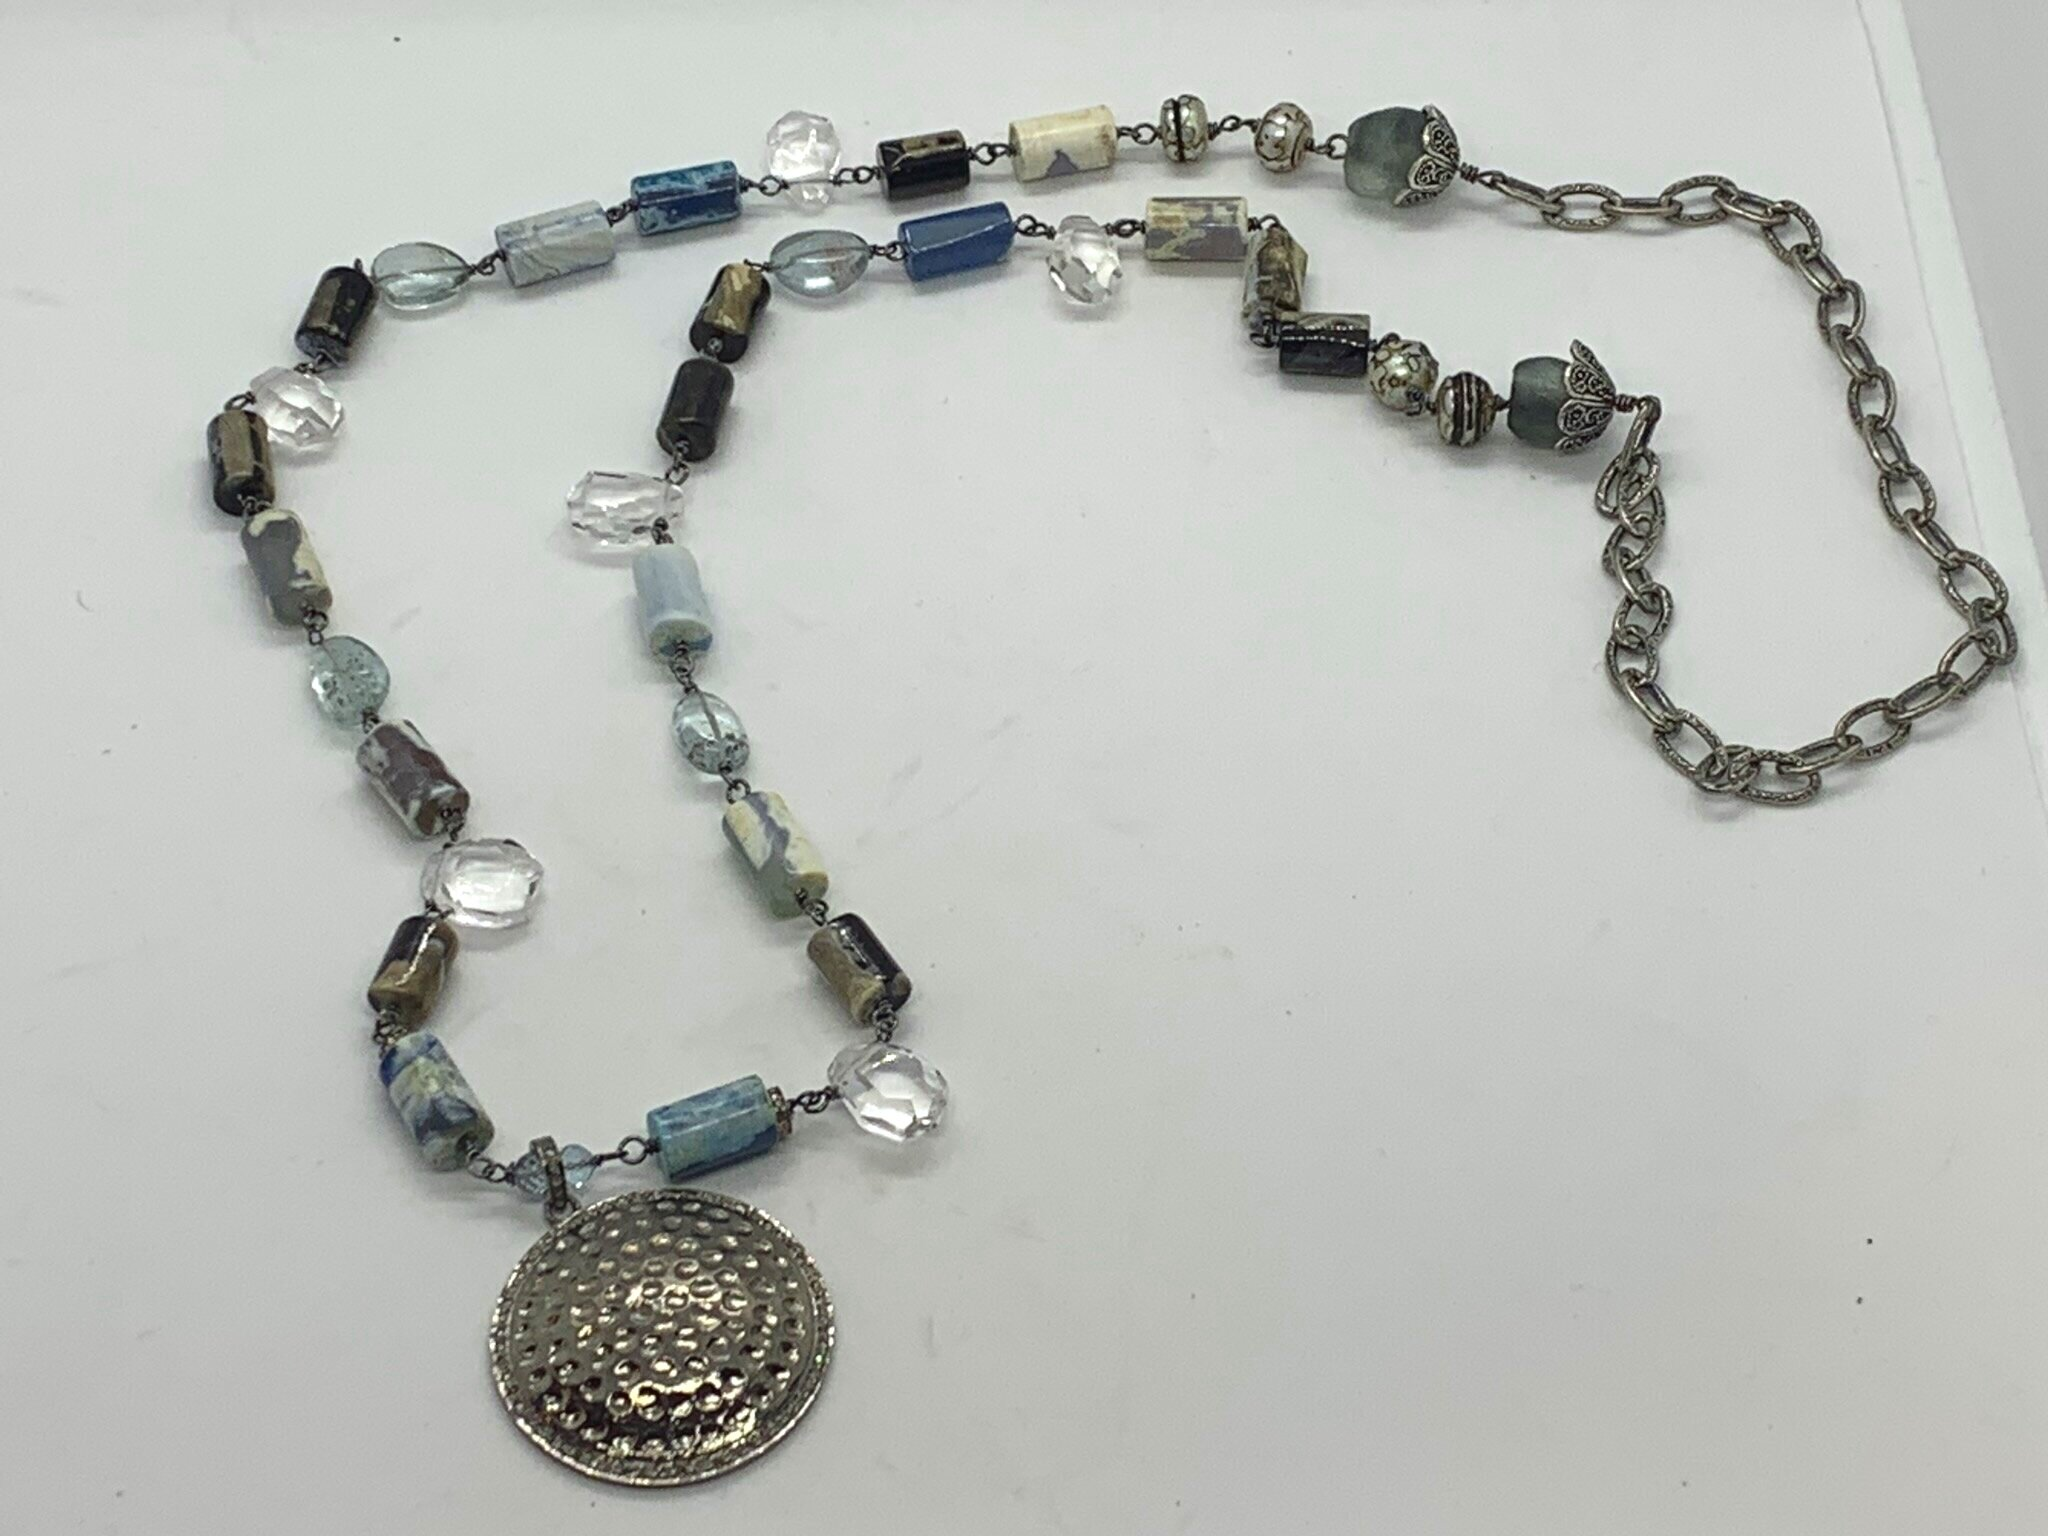 Handmade Agate, aquamarine chain necklace with hammered sterling silver and diamond pendant. $450